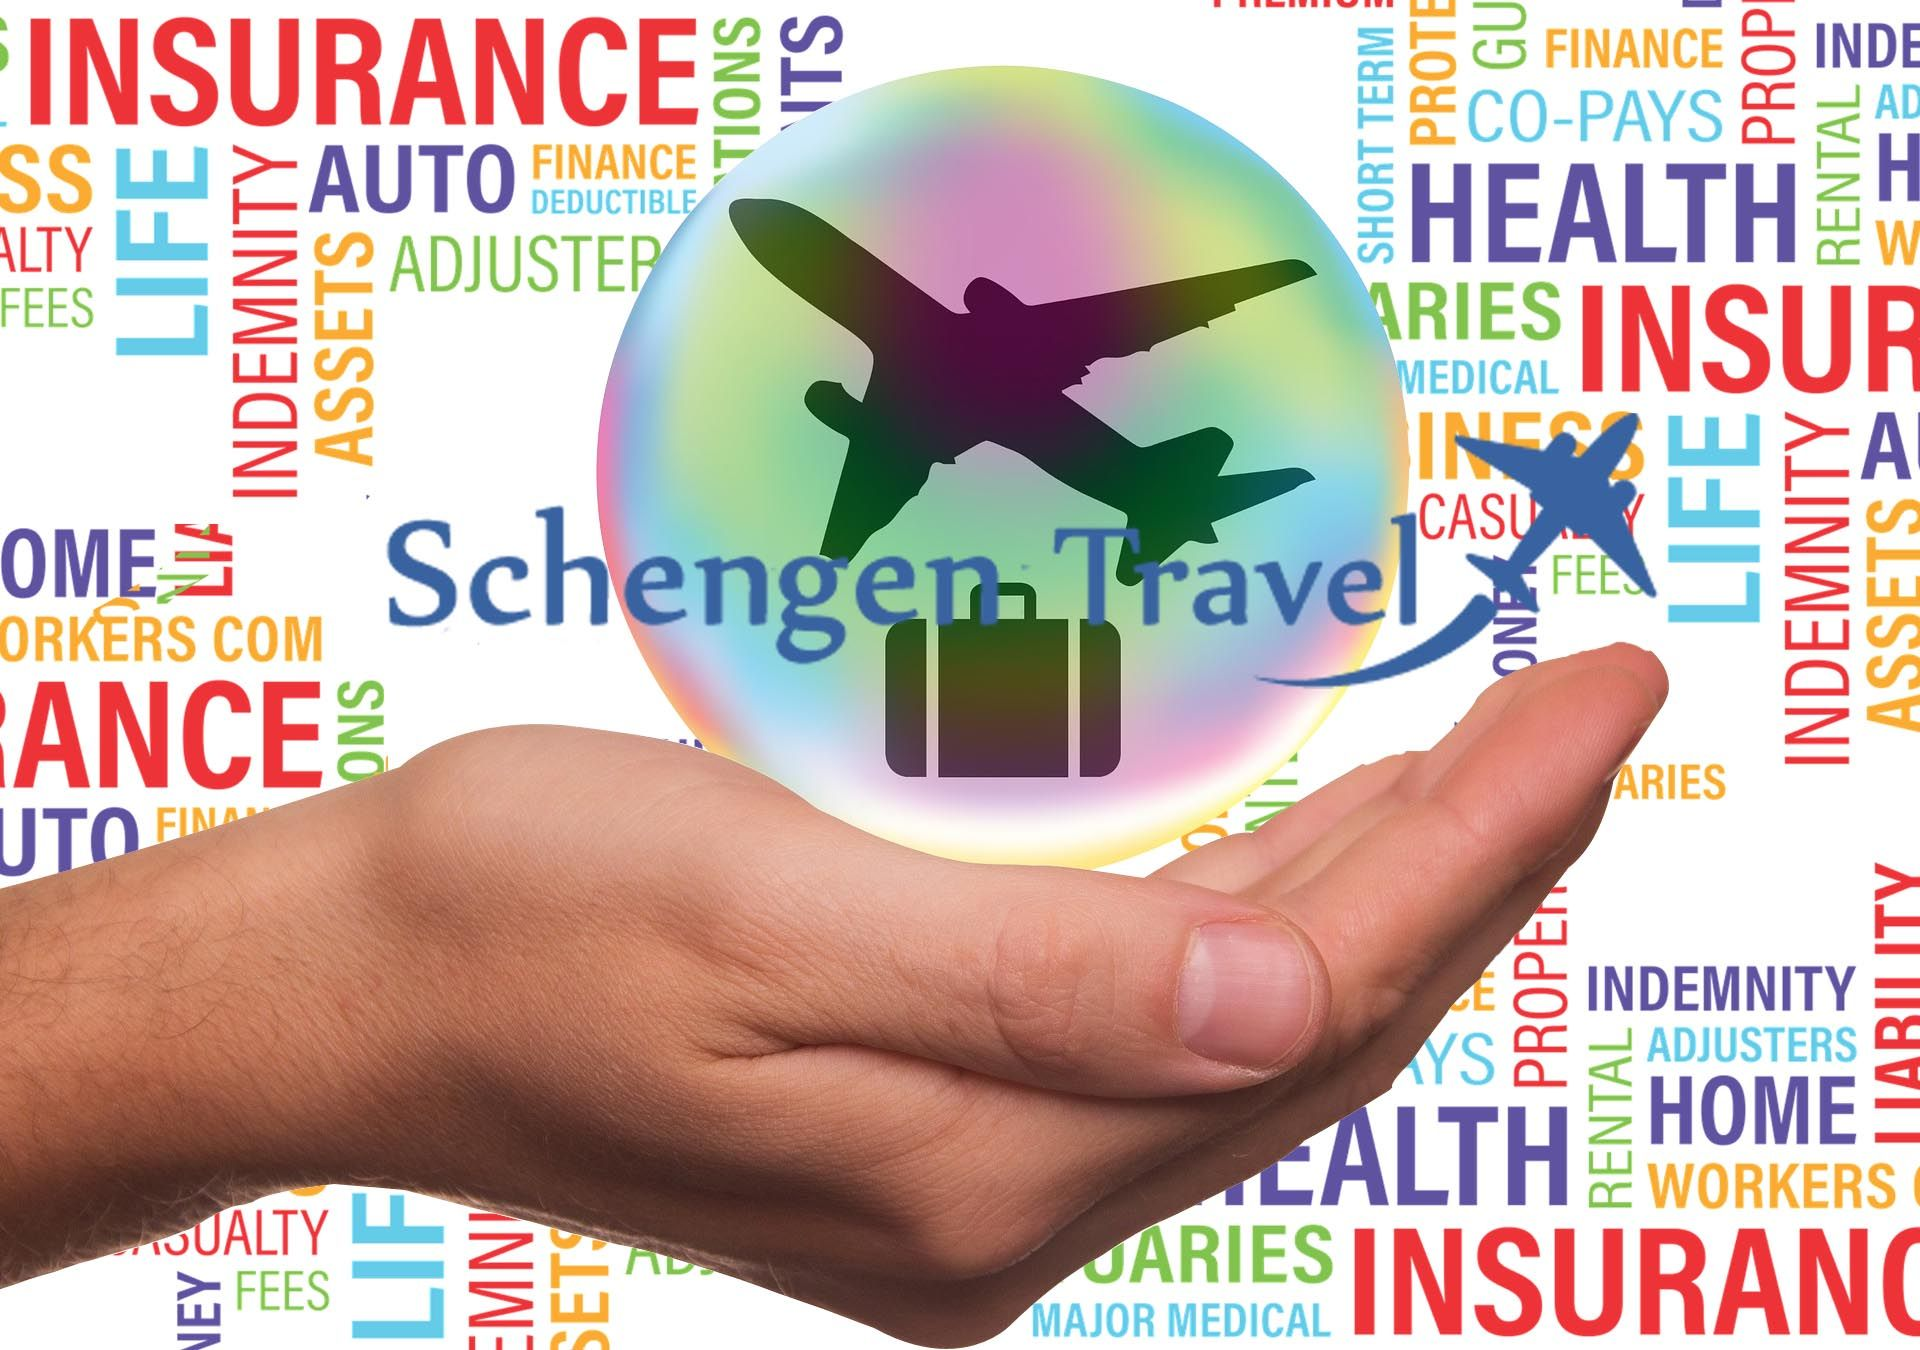 Schengen travel medical insurance Medical insurance